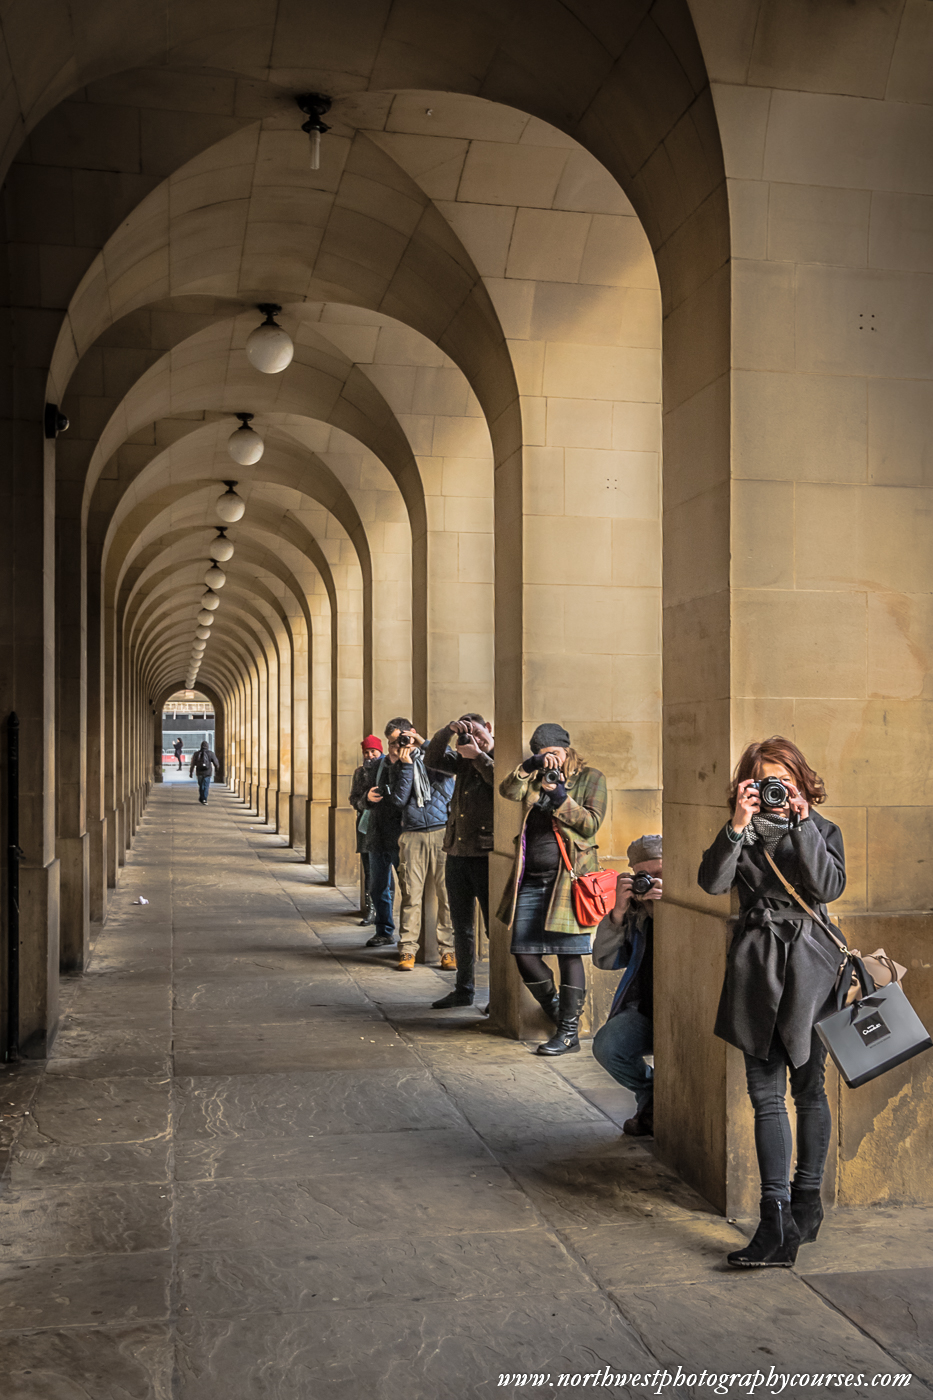 Manchester Photography Courses